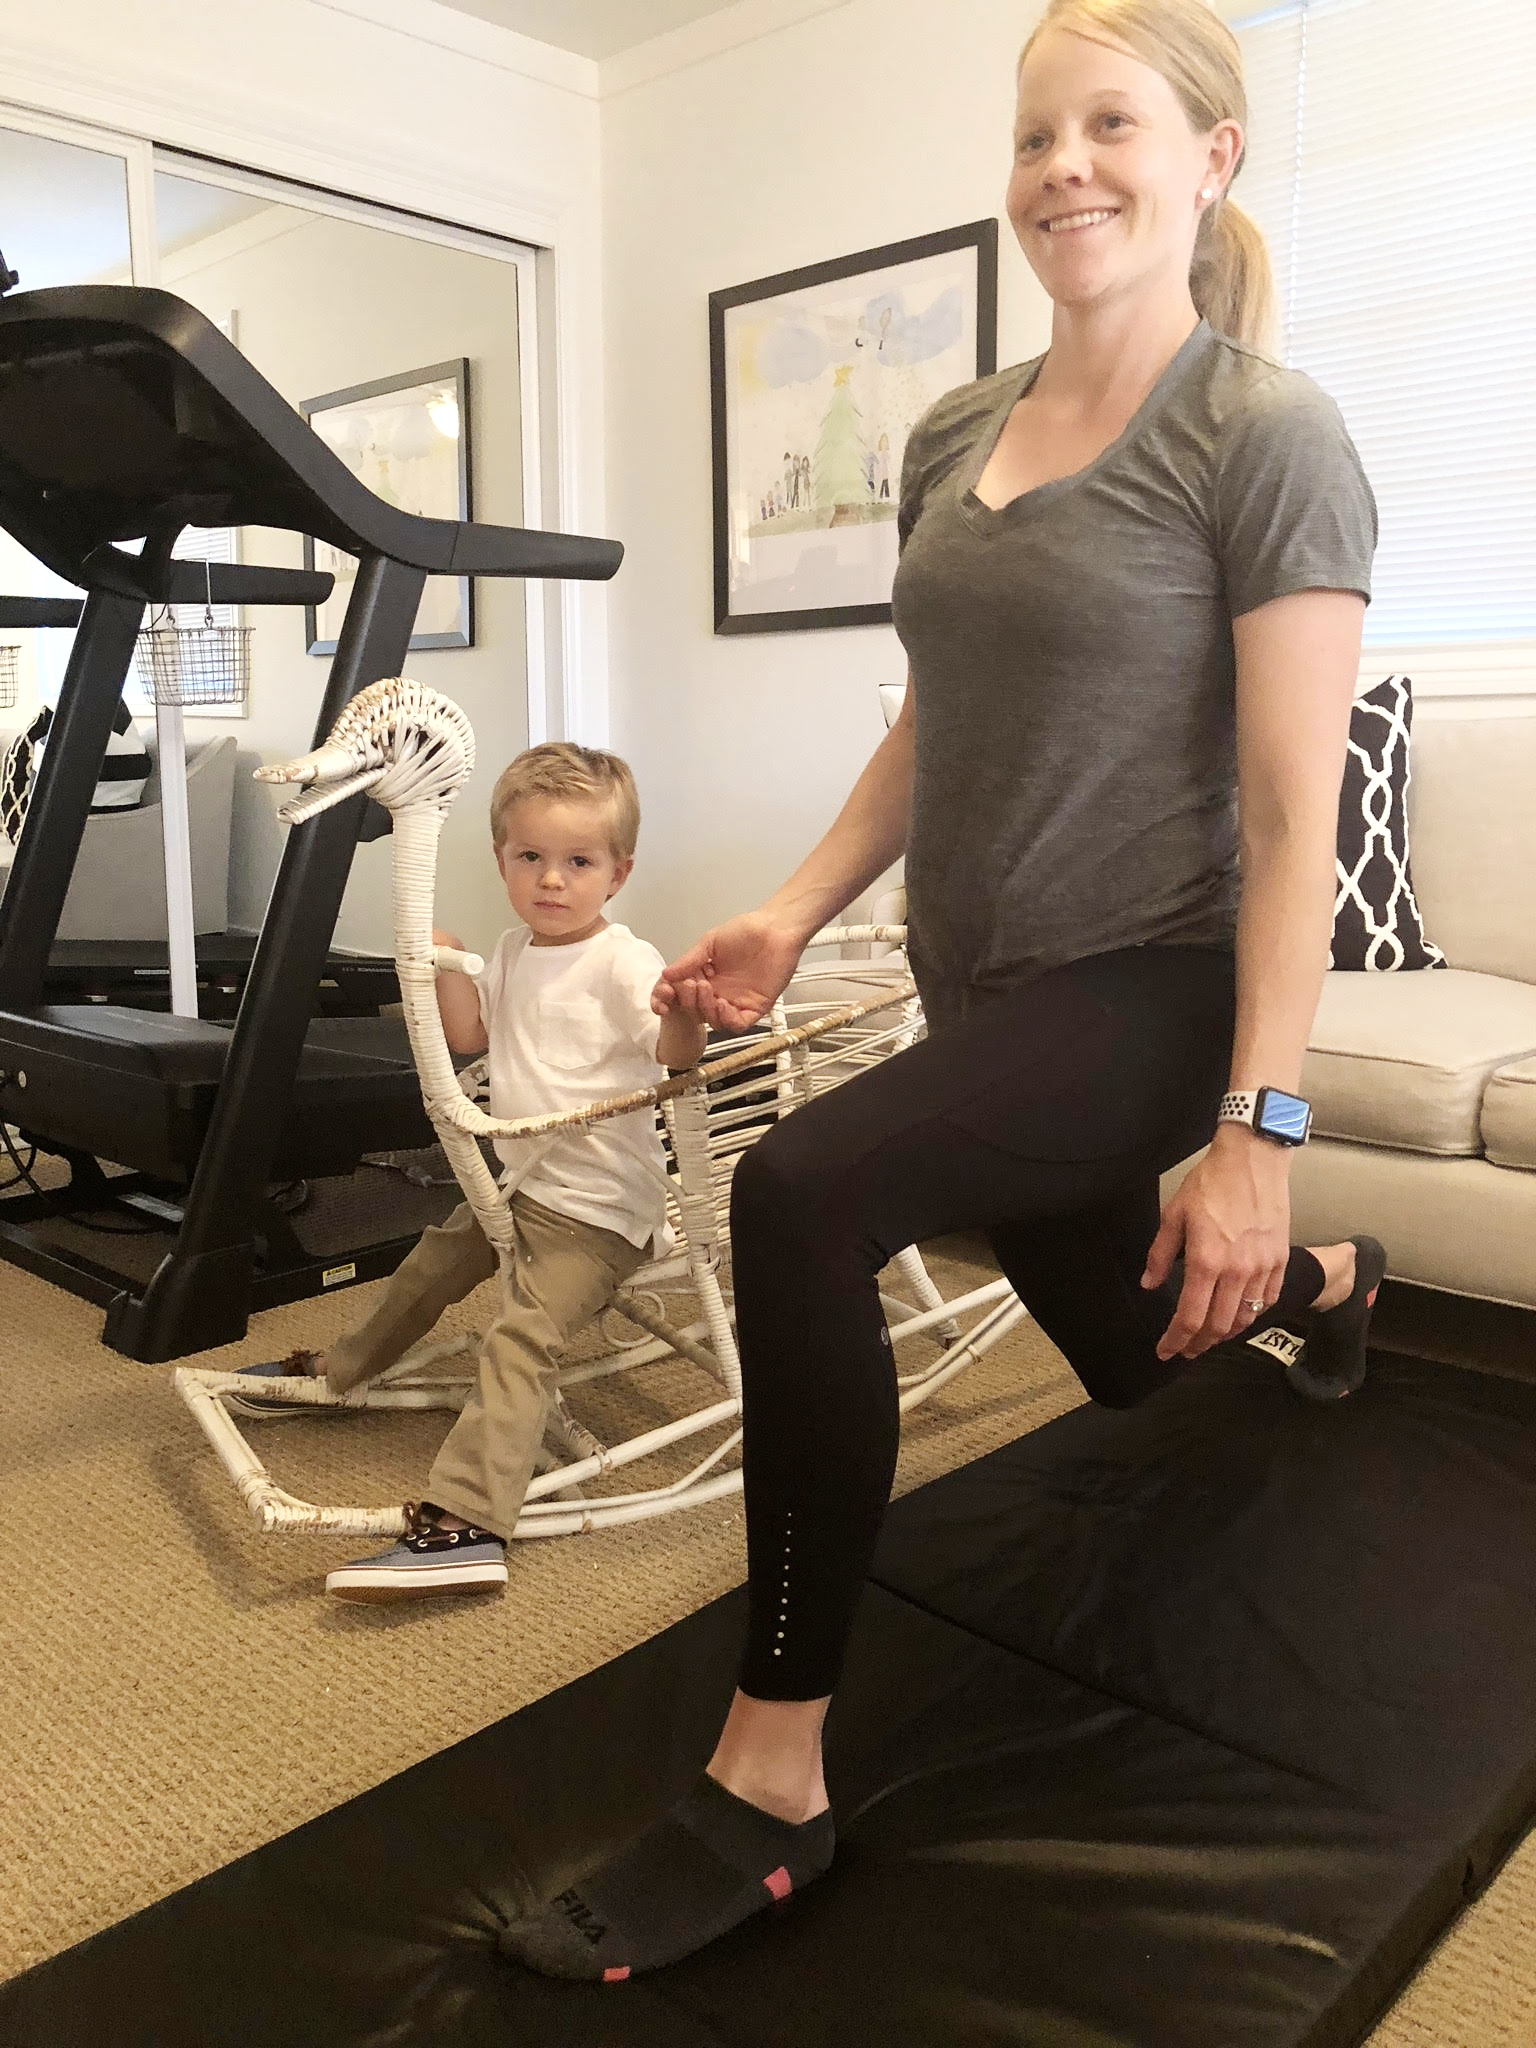 Facebook Mom's workout